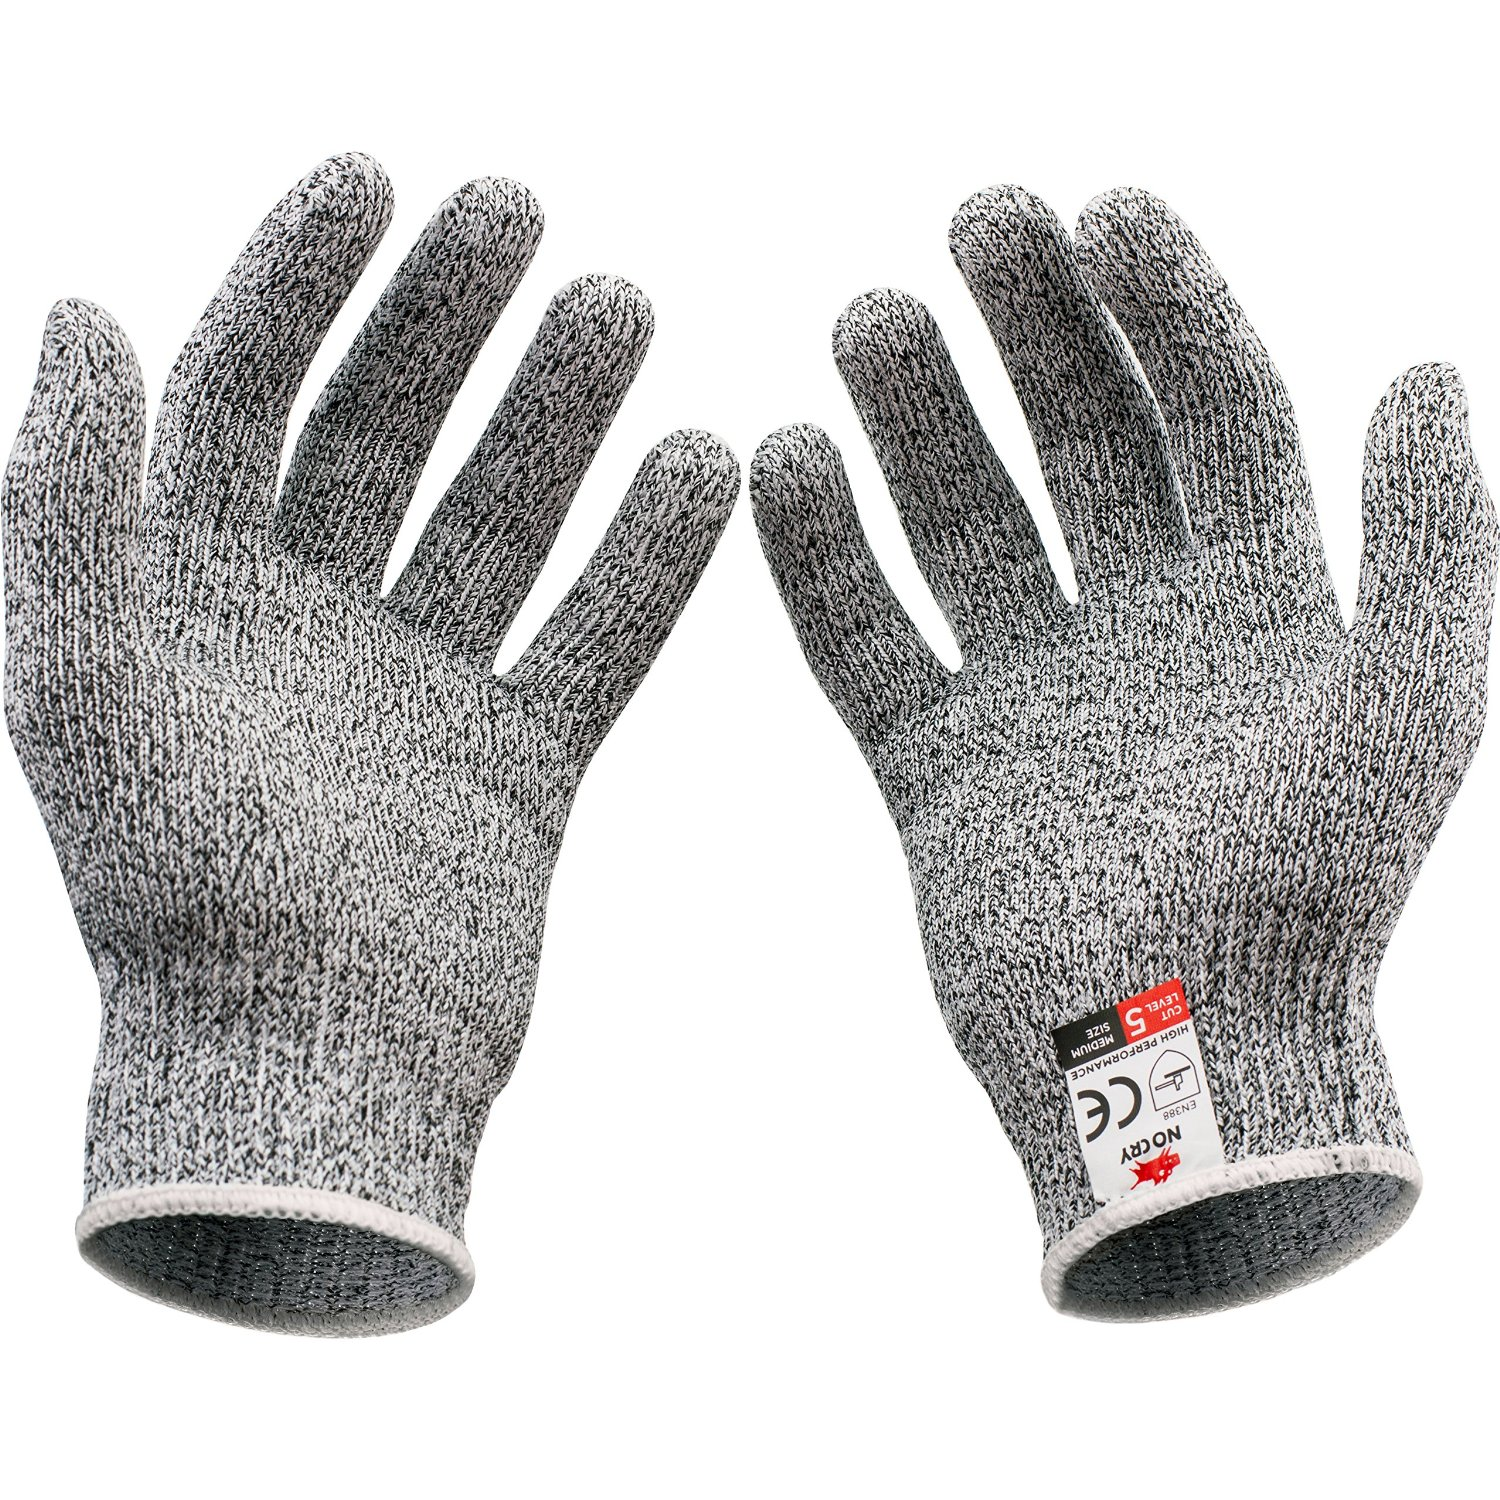 NoCry Cut Resistant Gloves 3